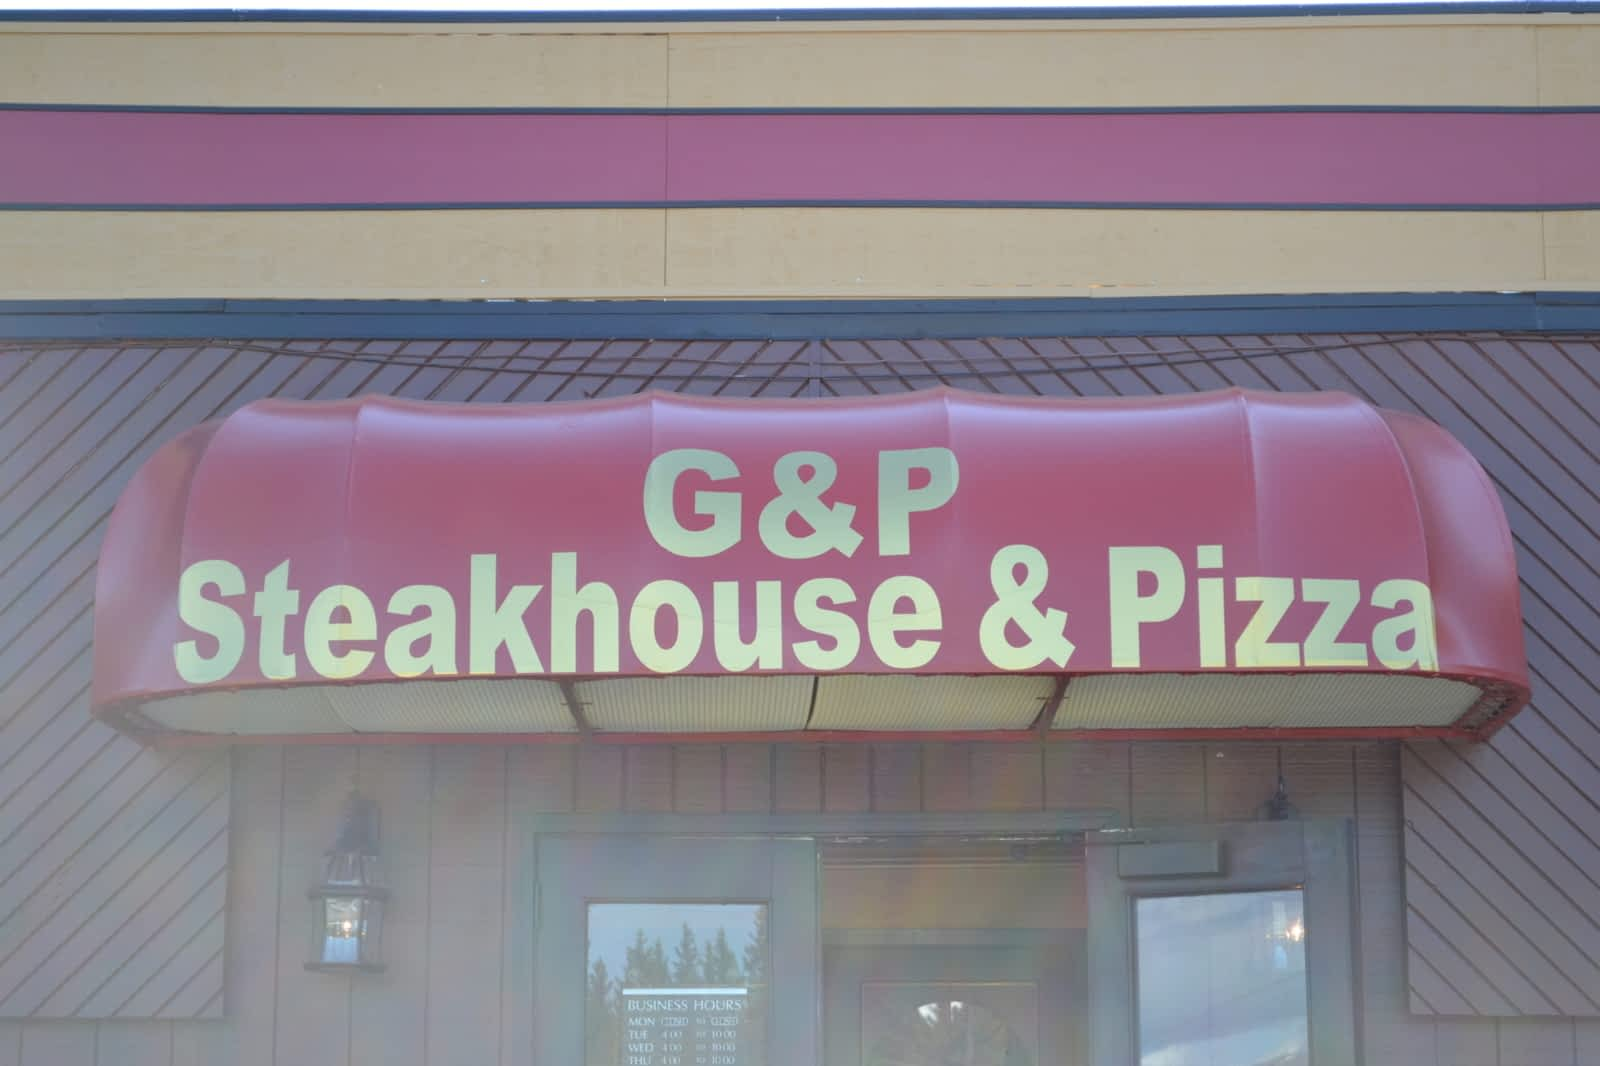 G&P Steakhouse & Pizza